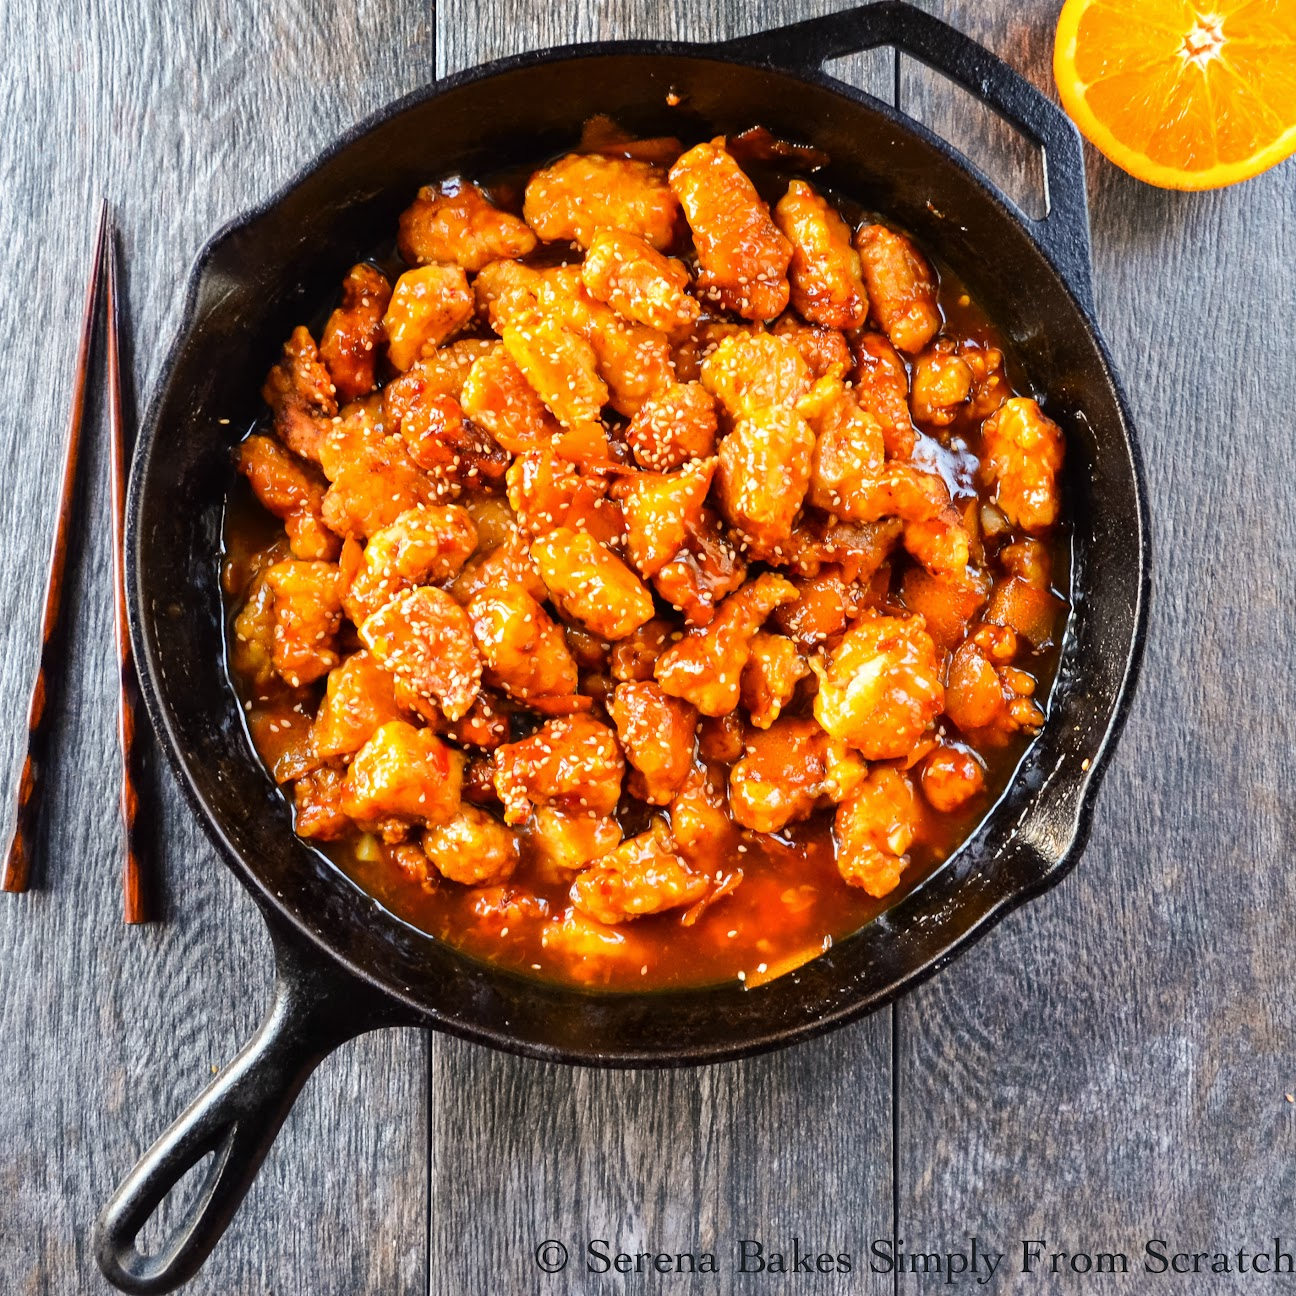 Chinese Orange Peel Chicken serve with rice, fried rice or chowmein noodles.